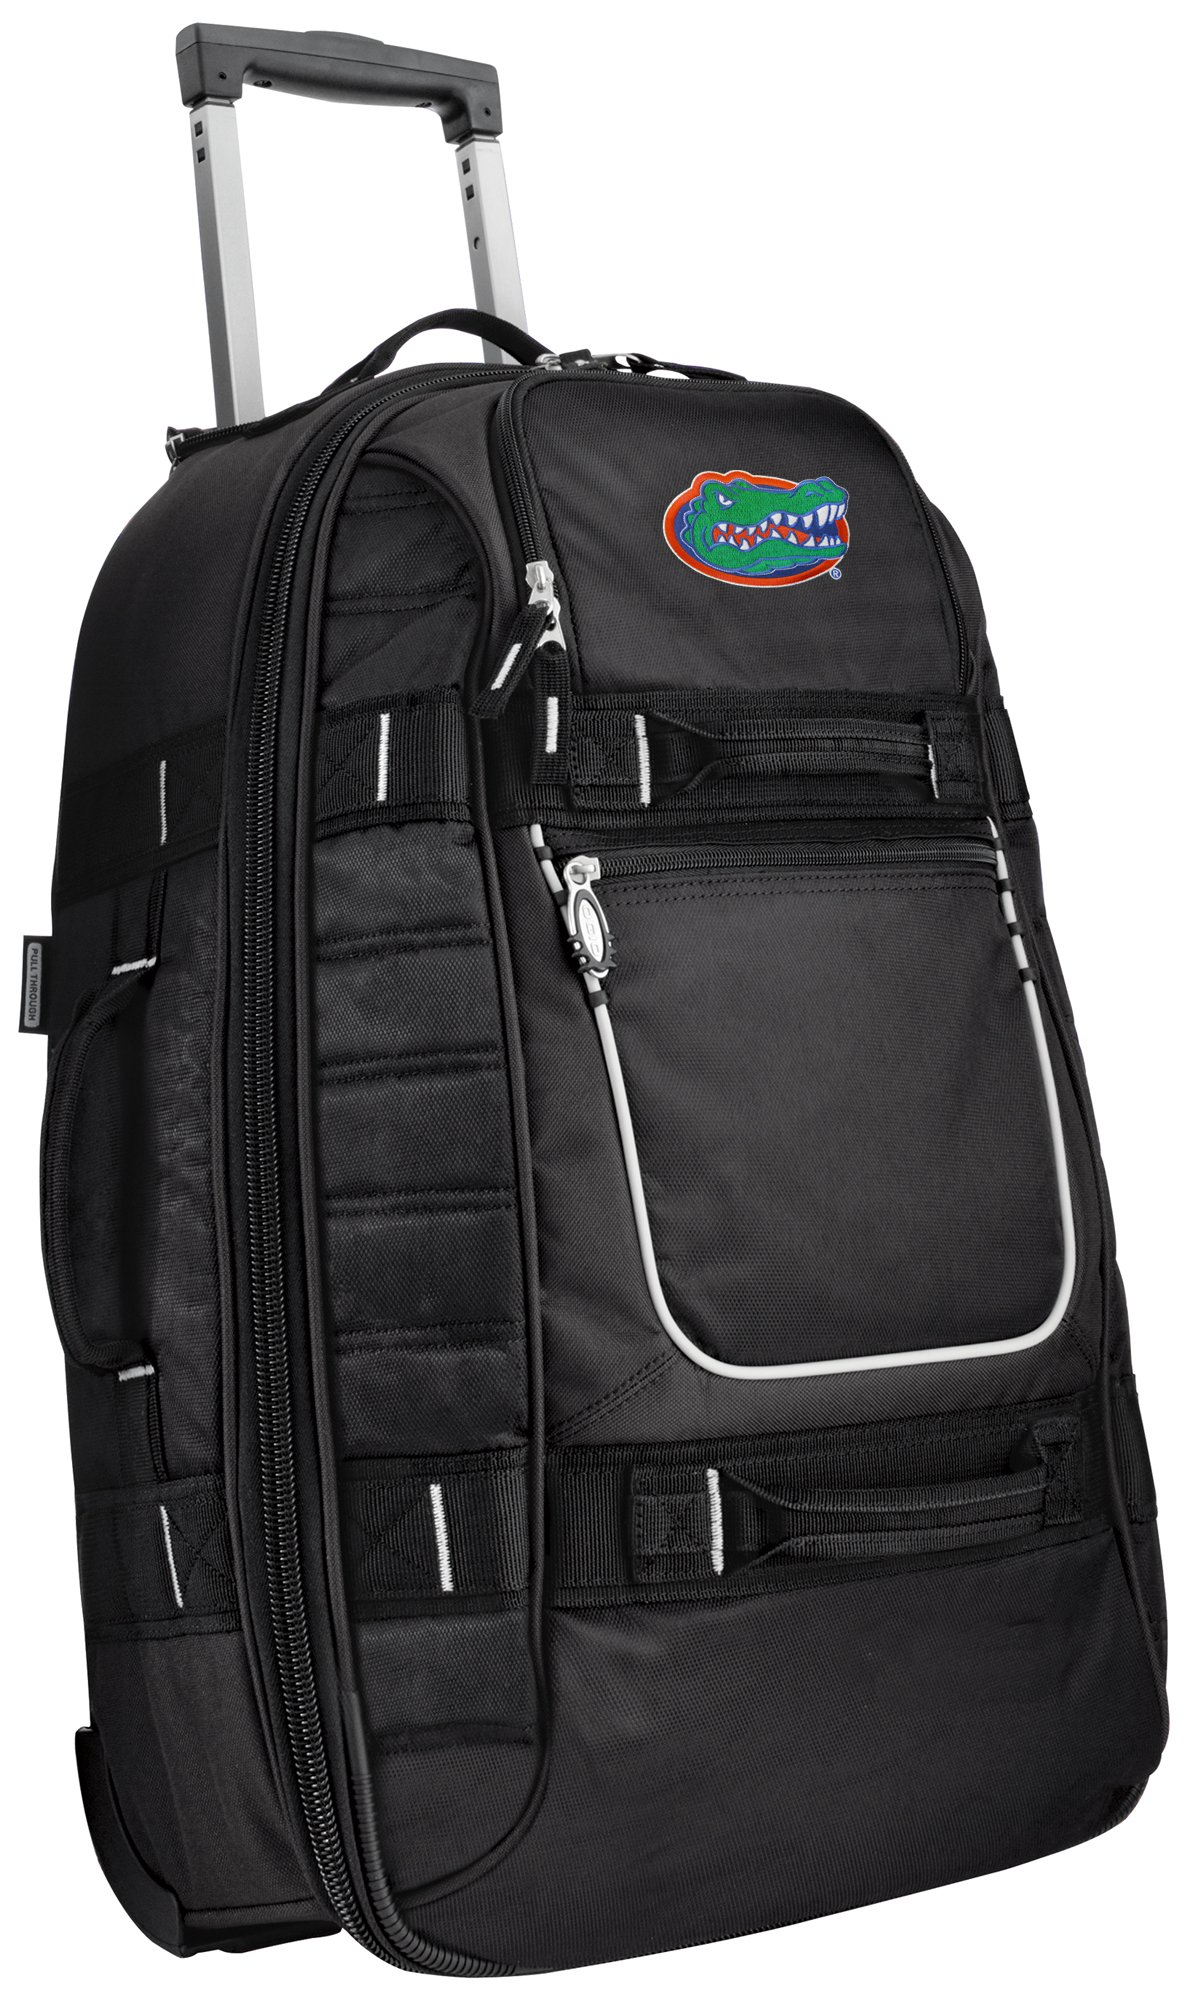 Small University of Florida Carry-On Bag Wheeled Suitcase Luggage Bags